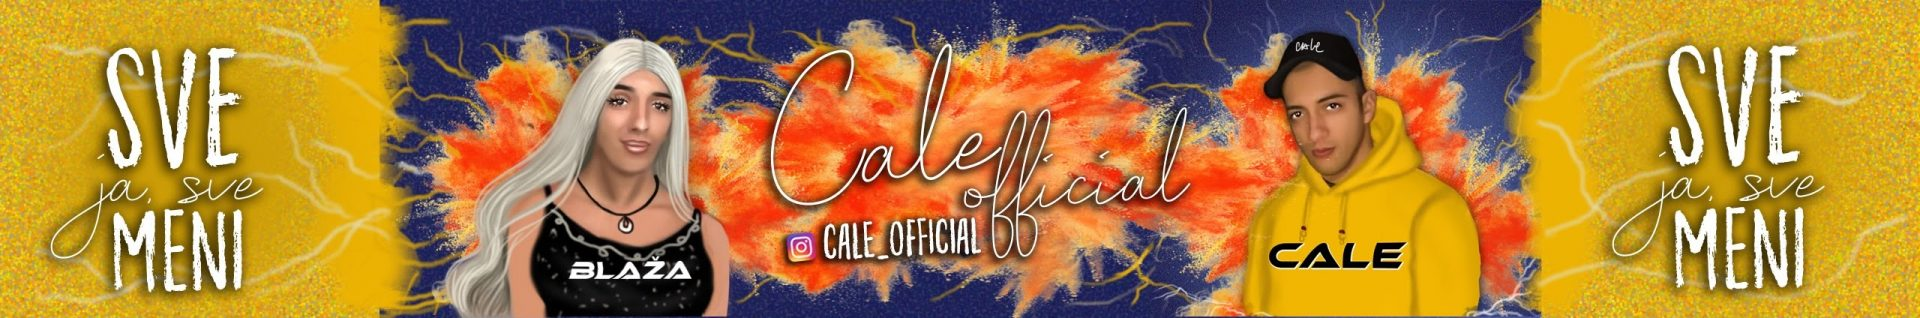 Cale Official